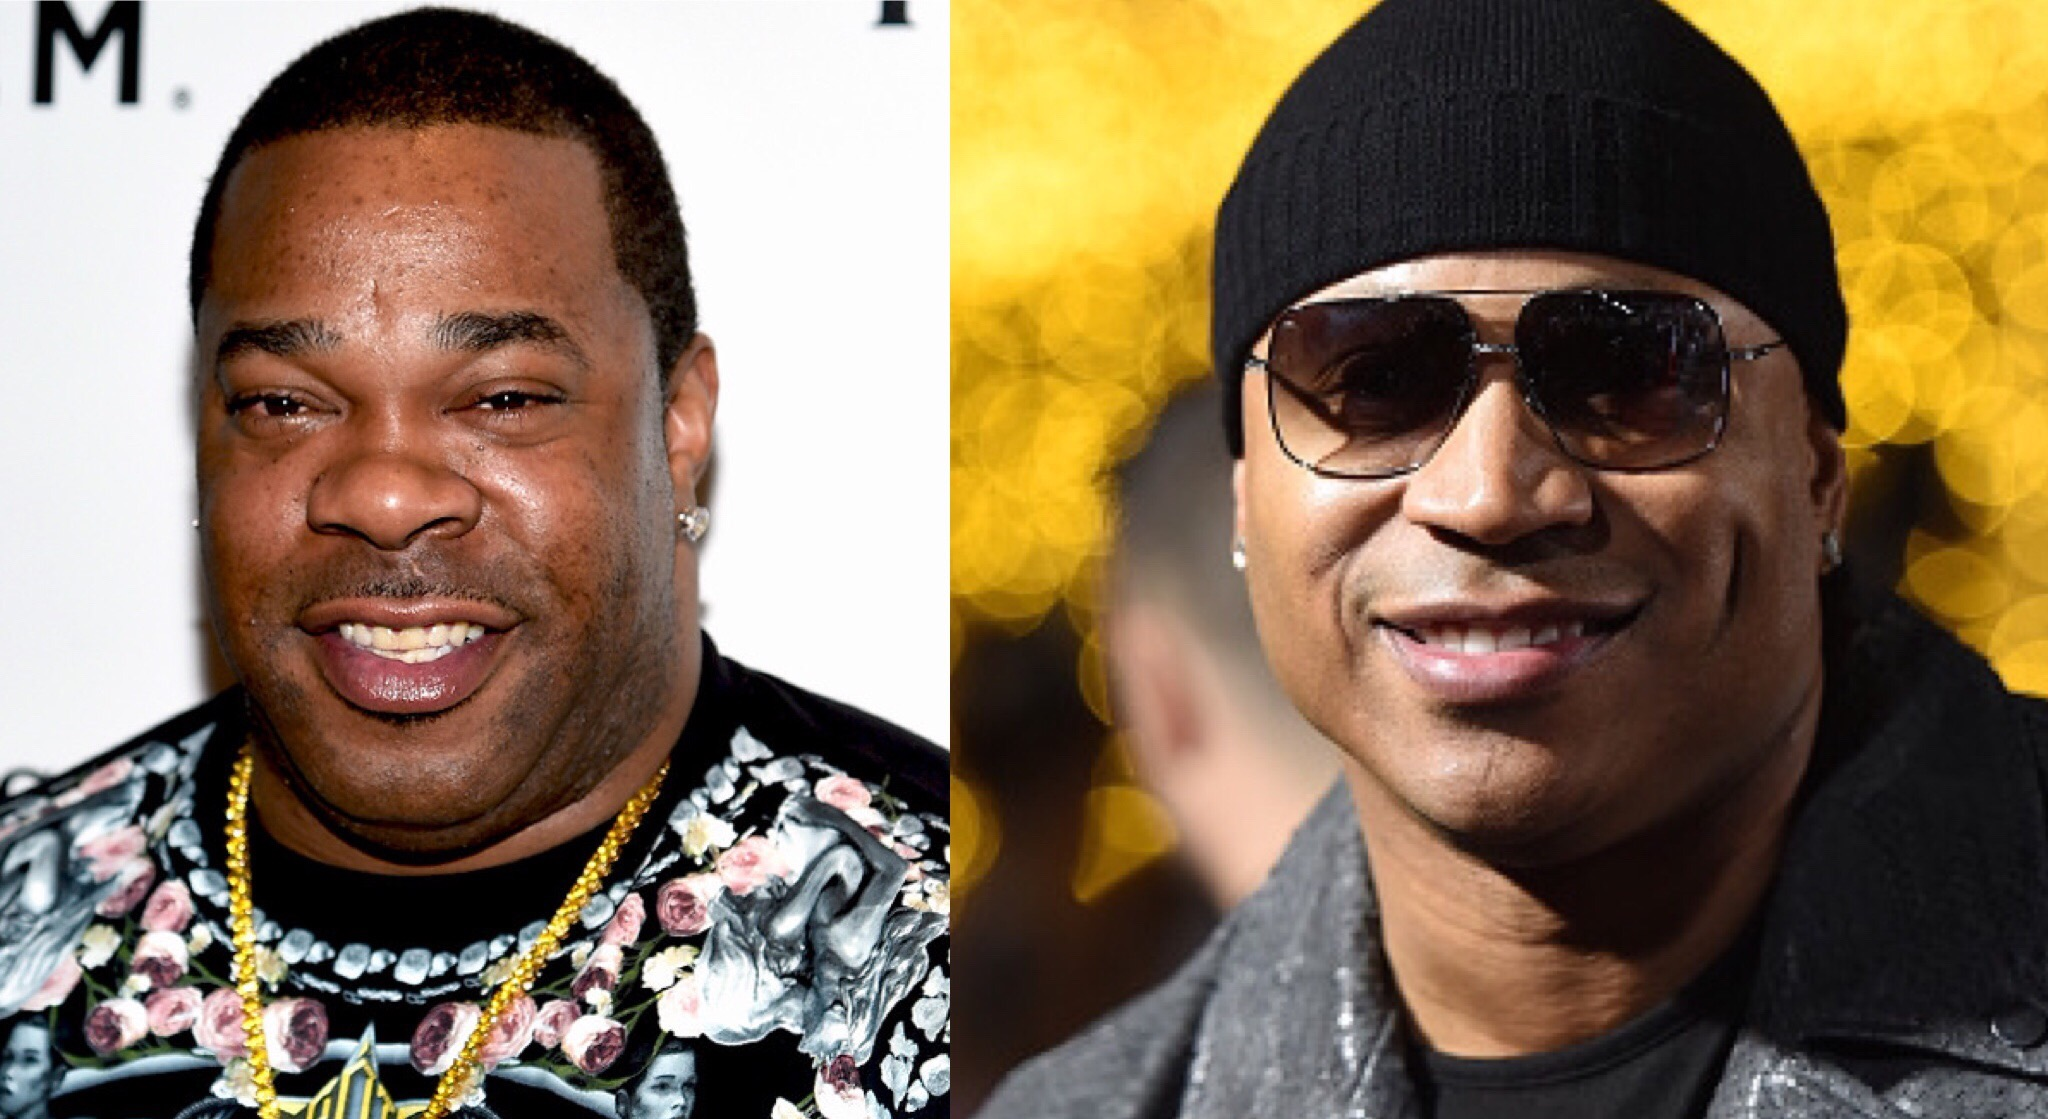 Busta Rhymes LL Cool J Hip Hop Culture